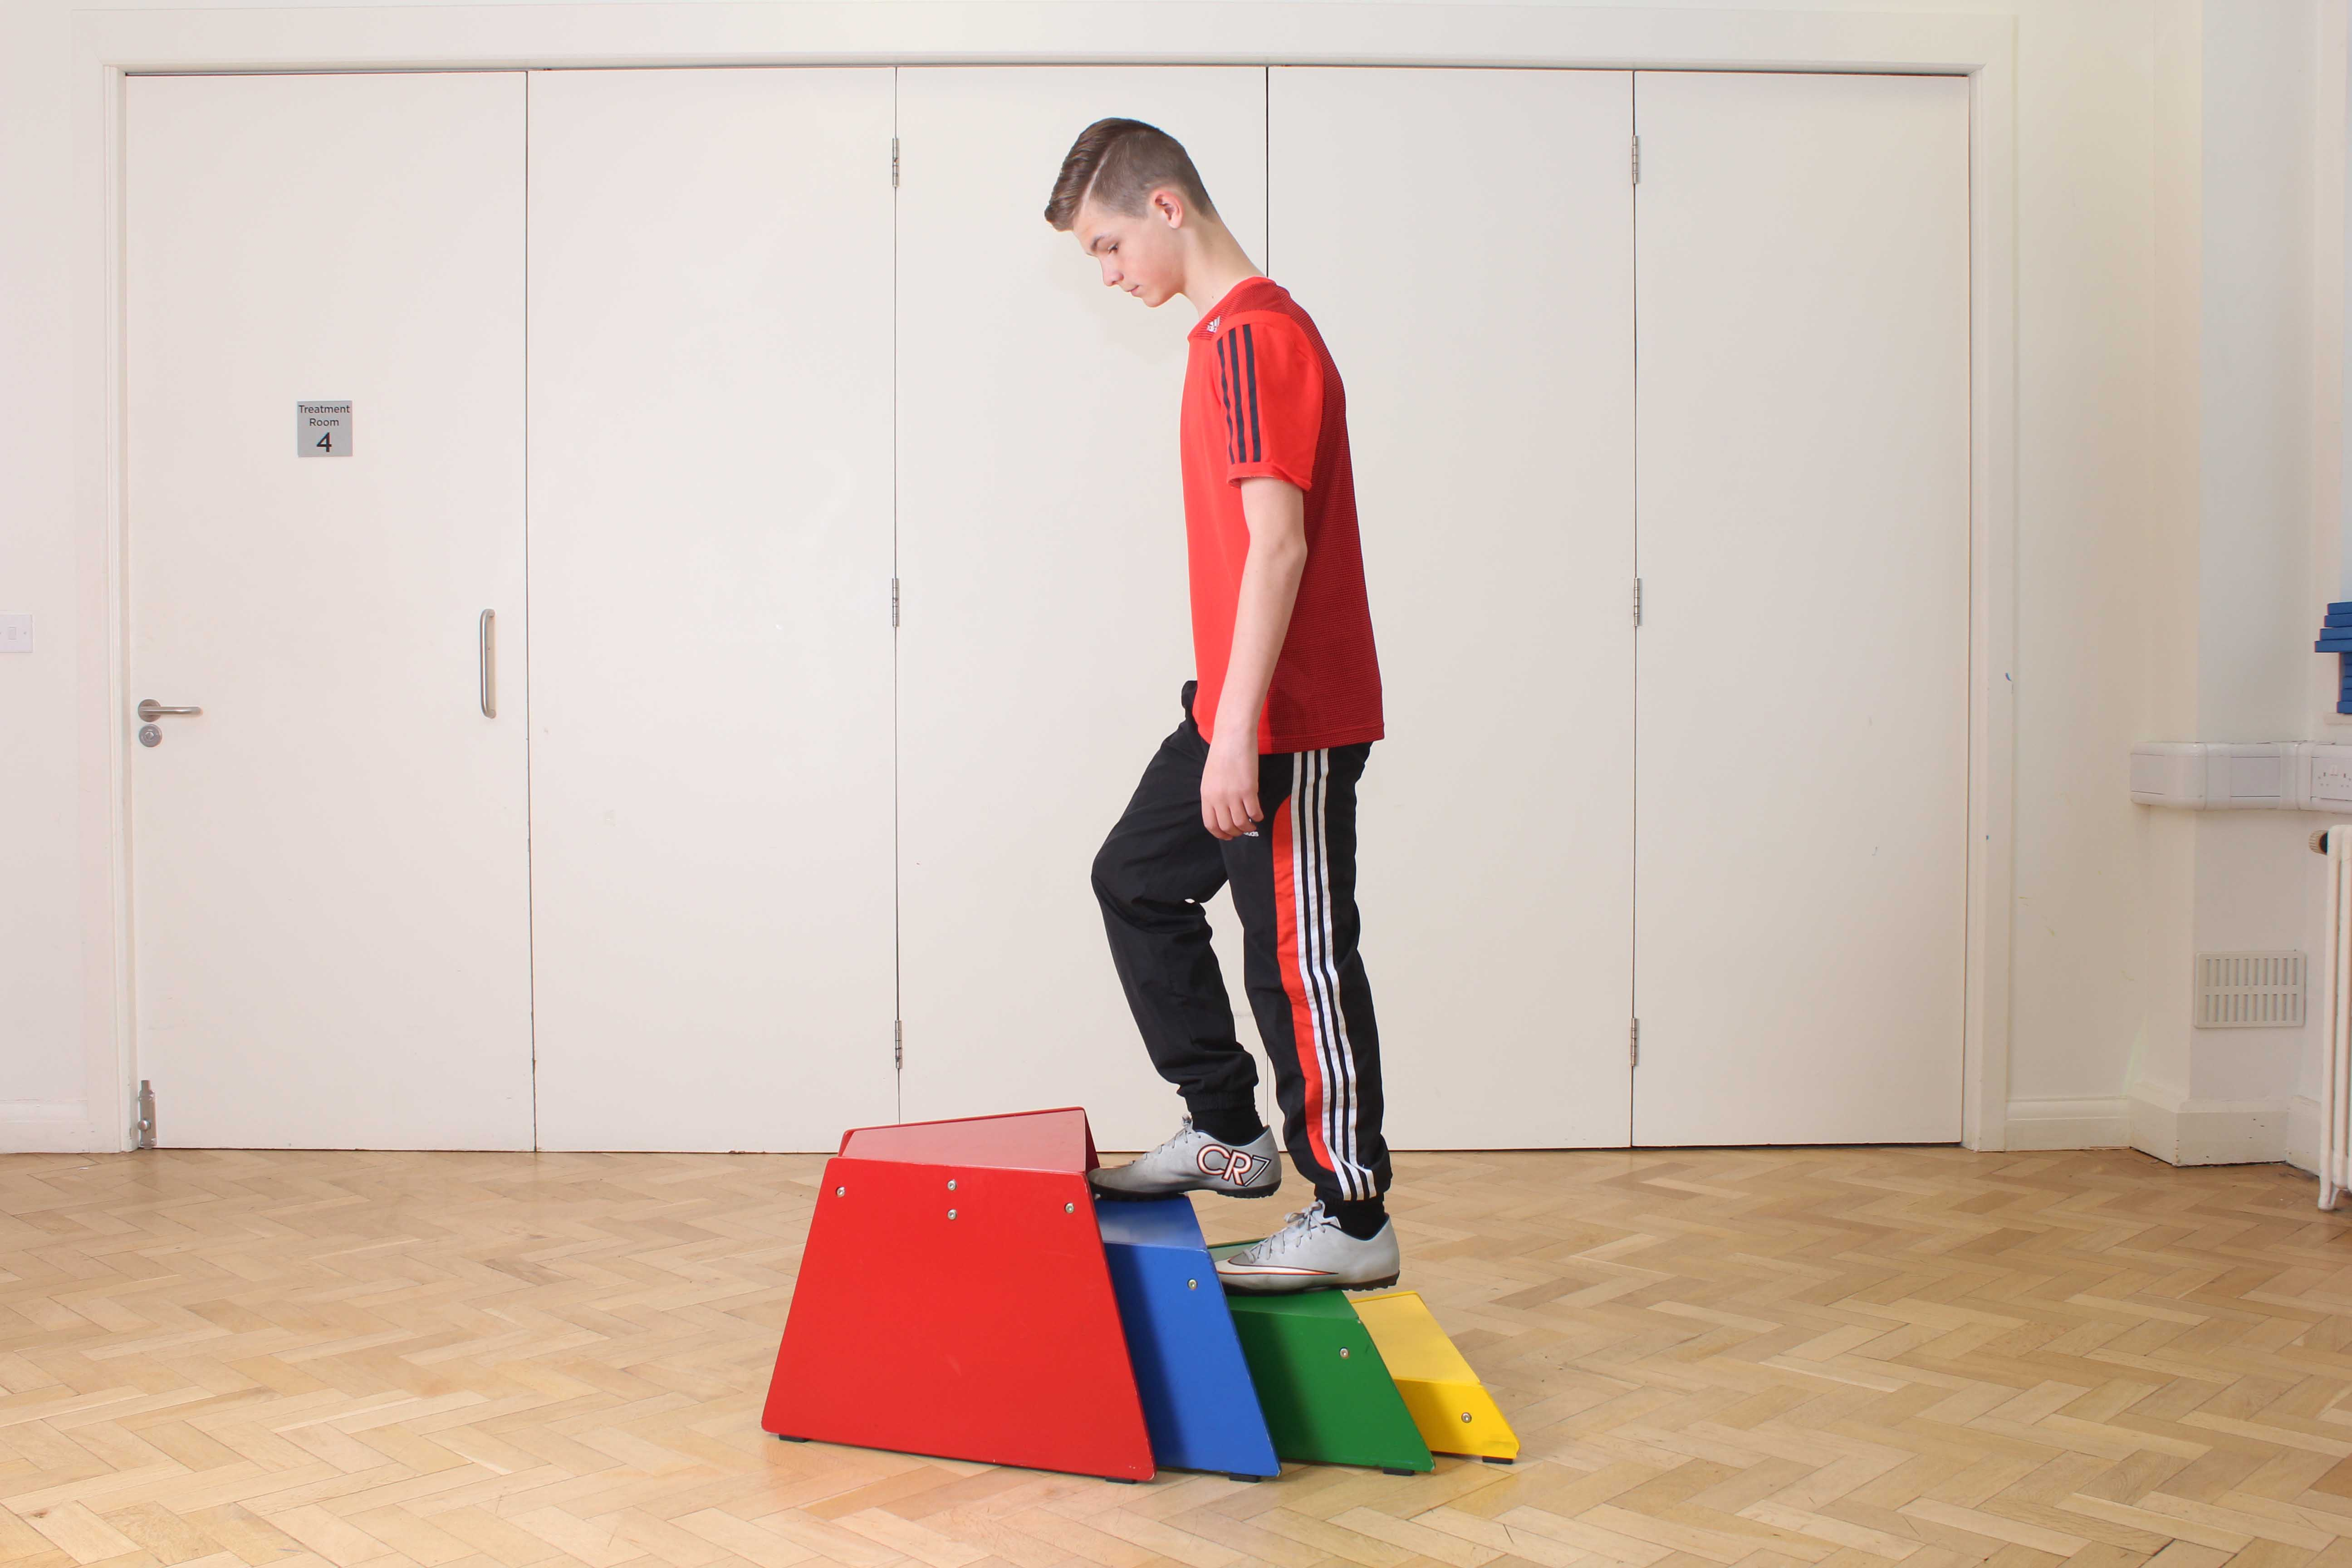 Gait re-education exercises to improve tone, posture and stability